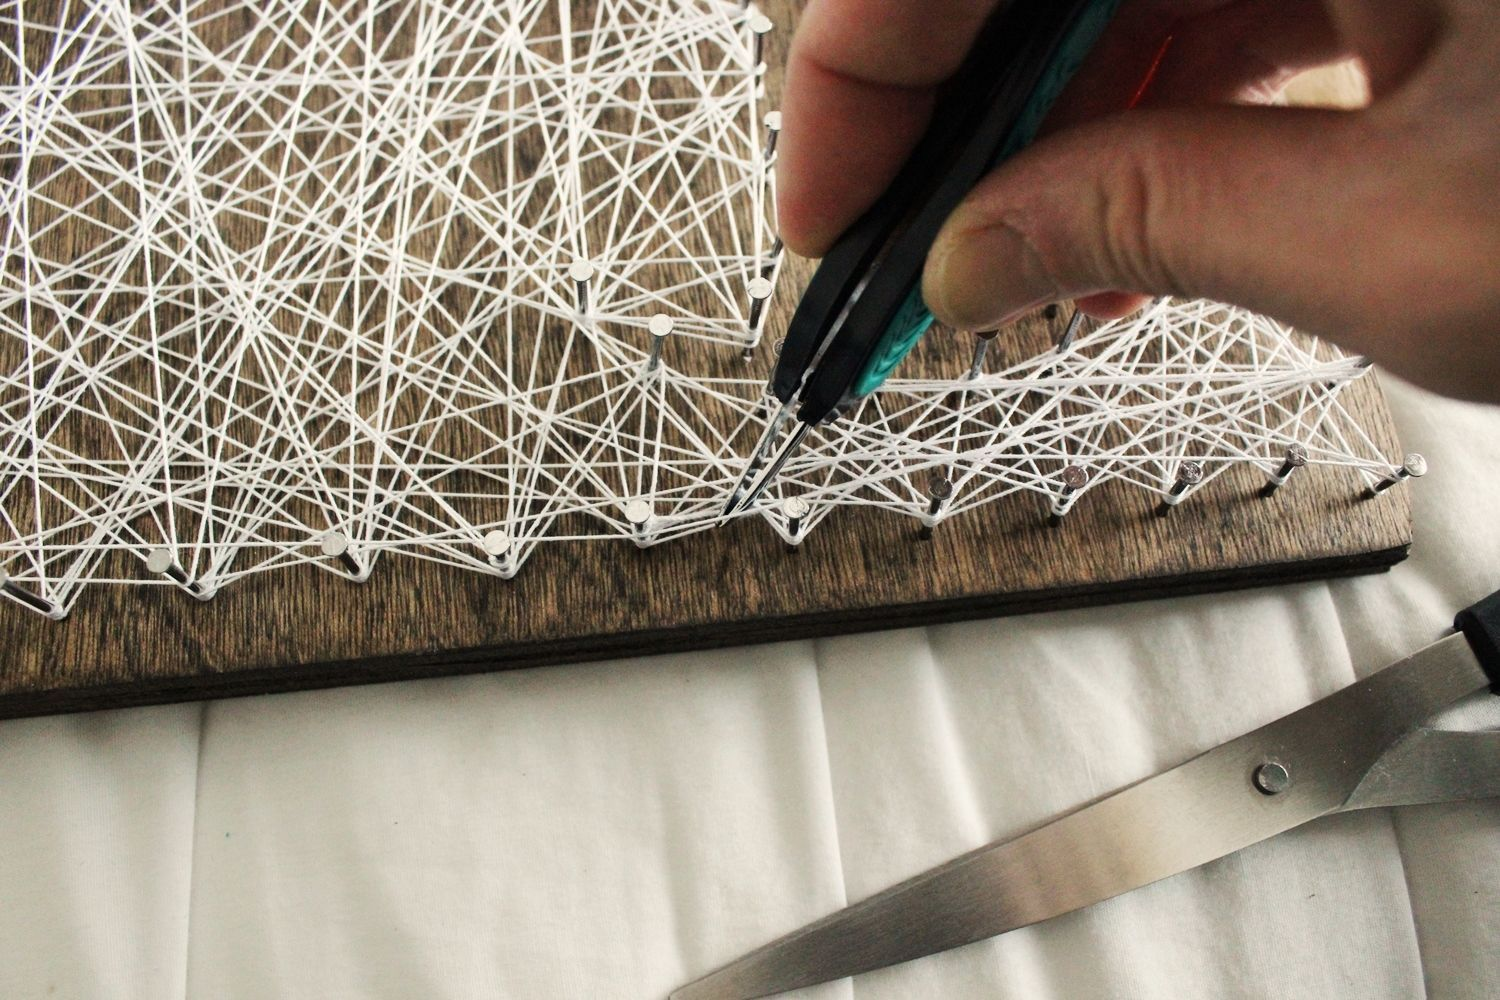 DIY String Art Tree - Trim the string very close